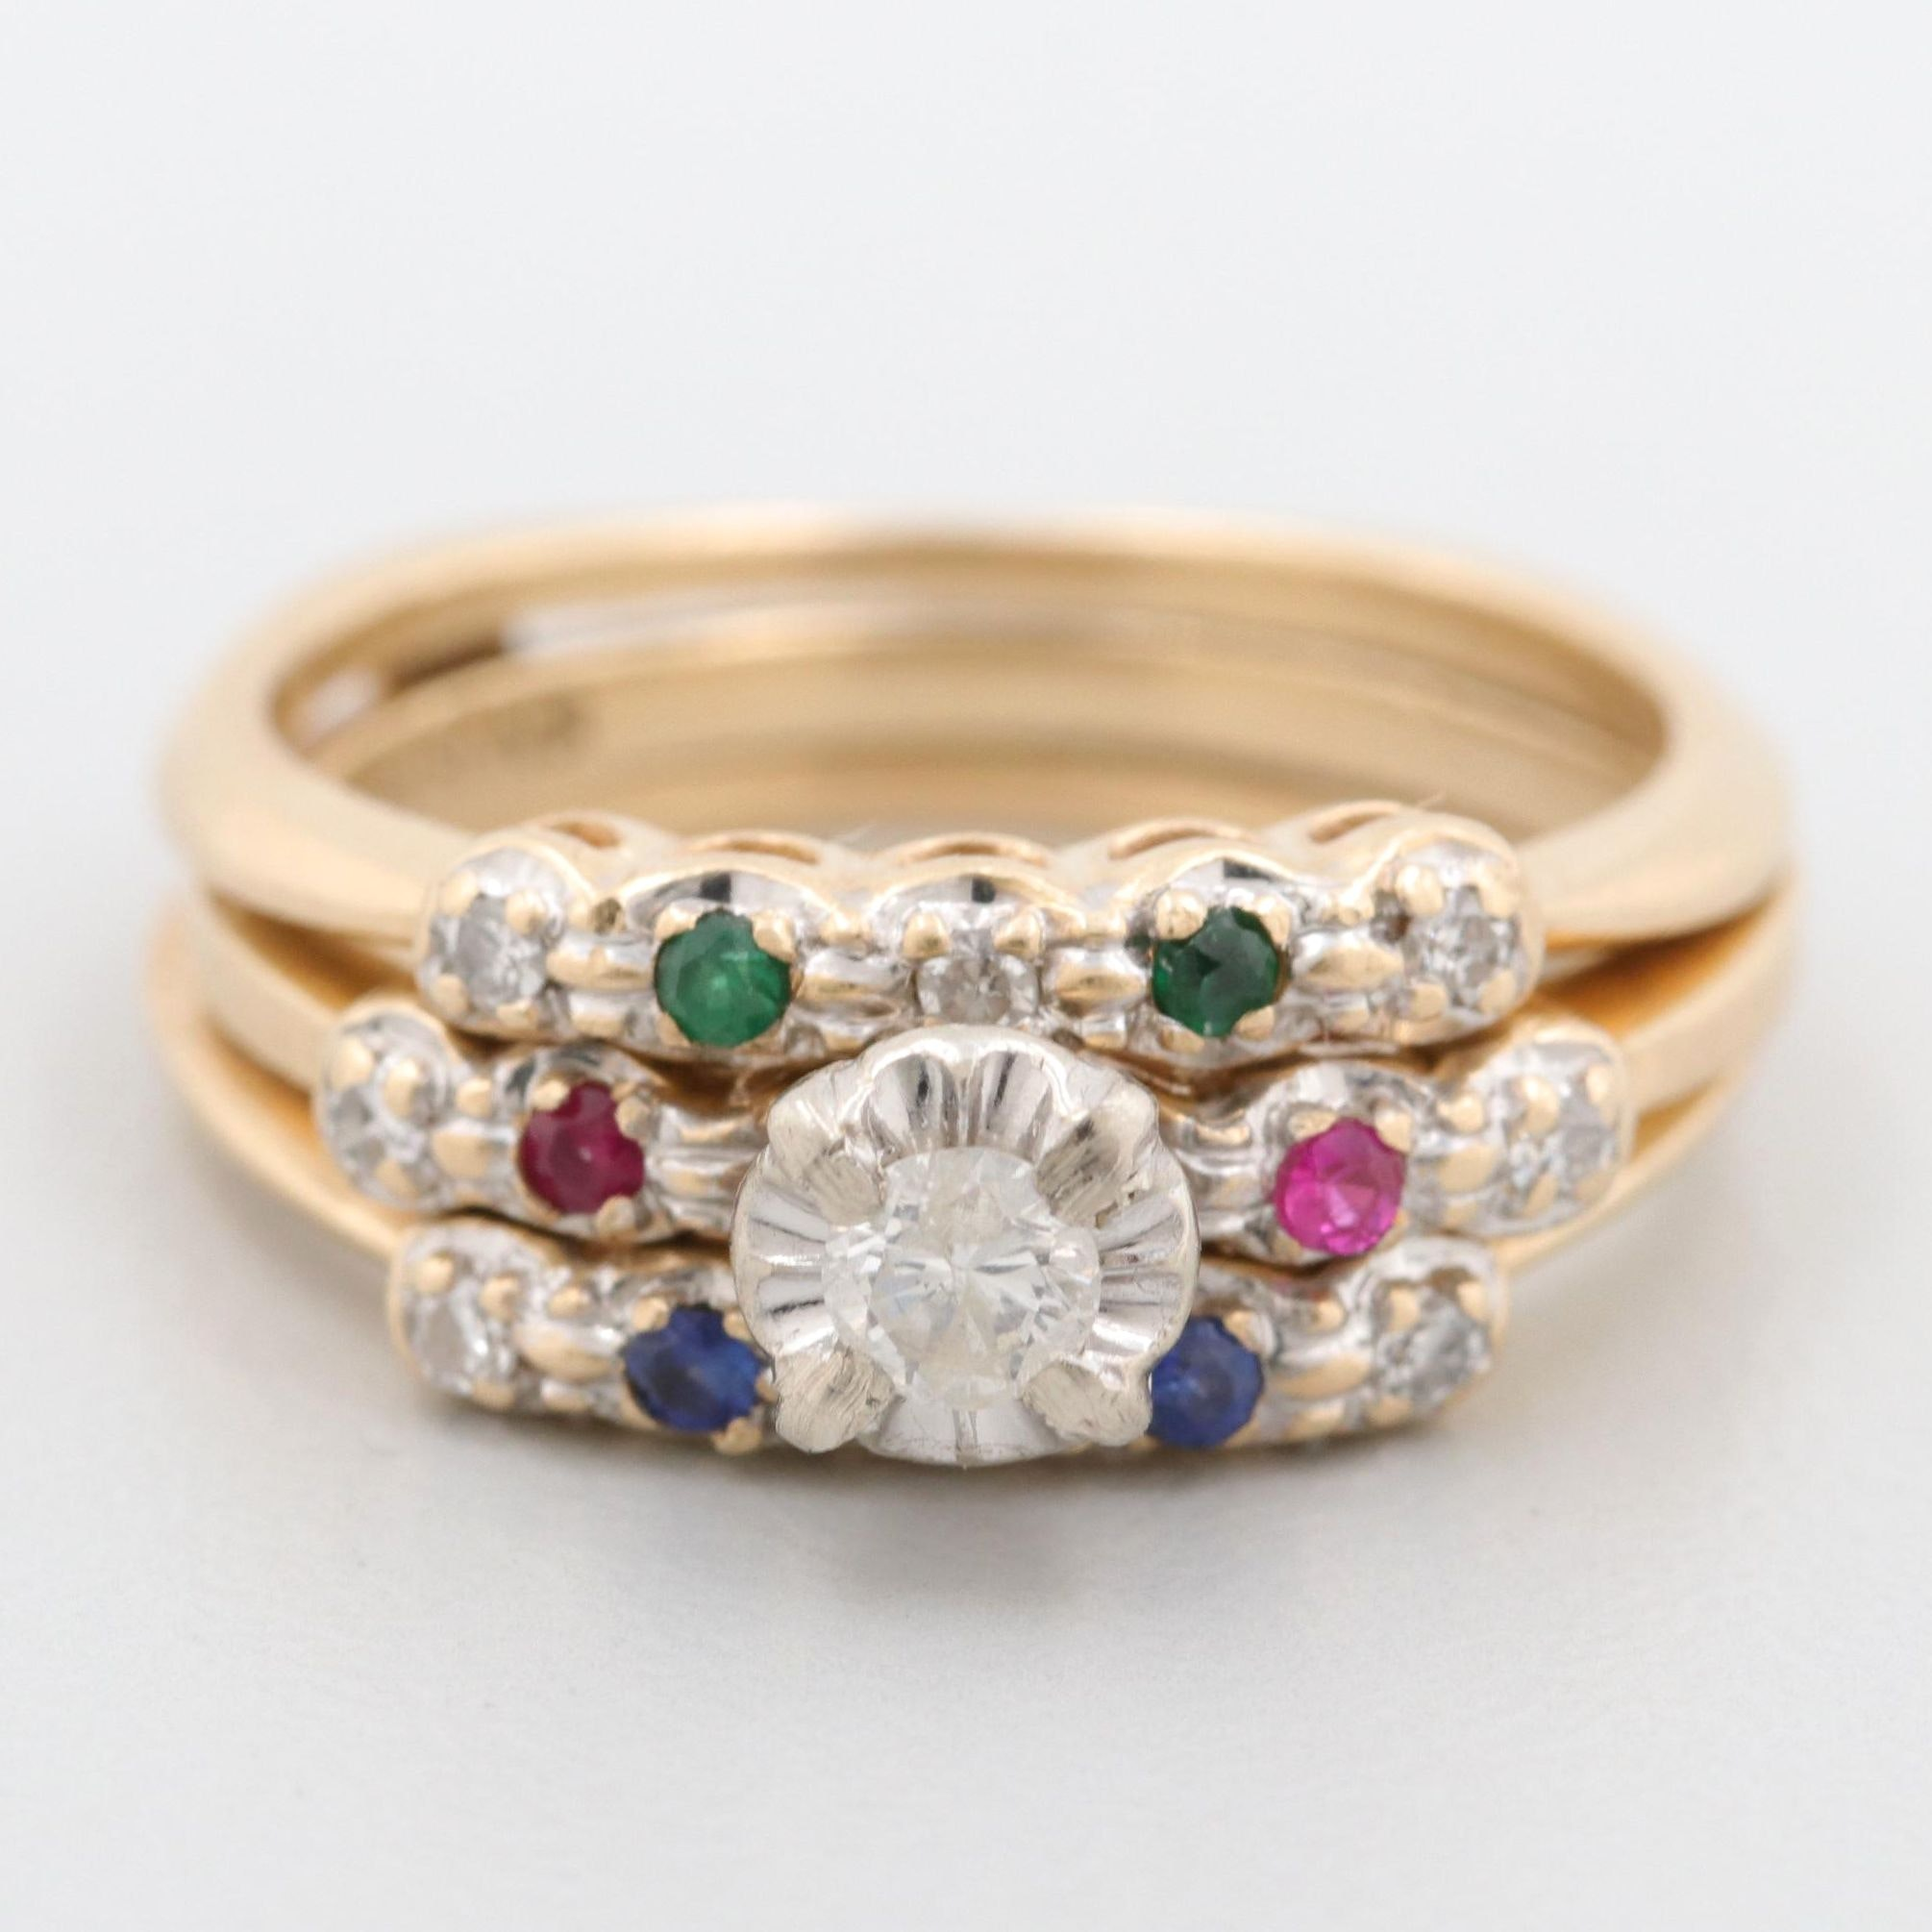 14K Diamond, Synthetic Ruby, Synthetic Spinel and Synthetic Emerald Ring Set